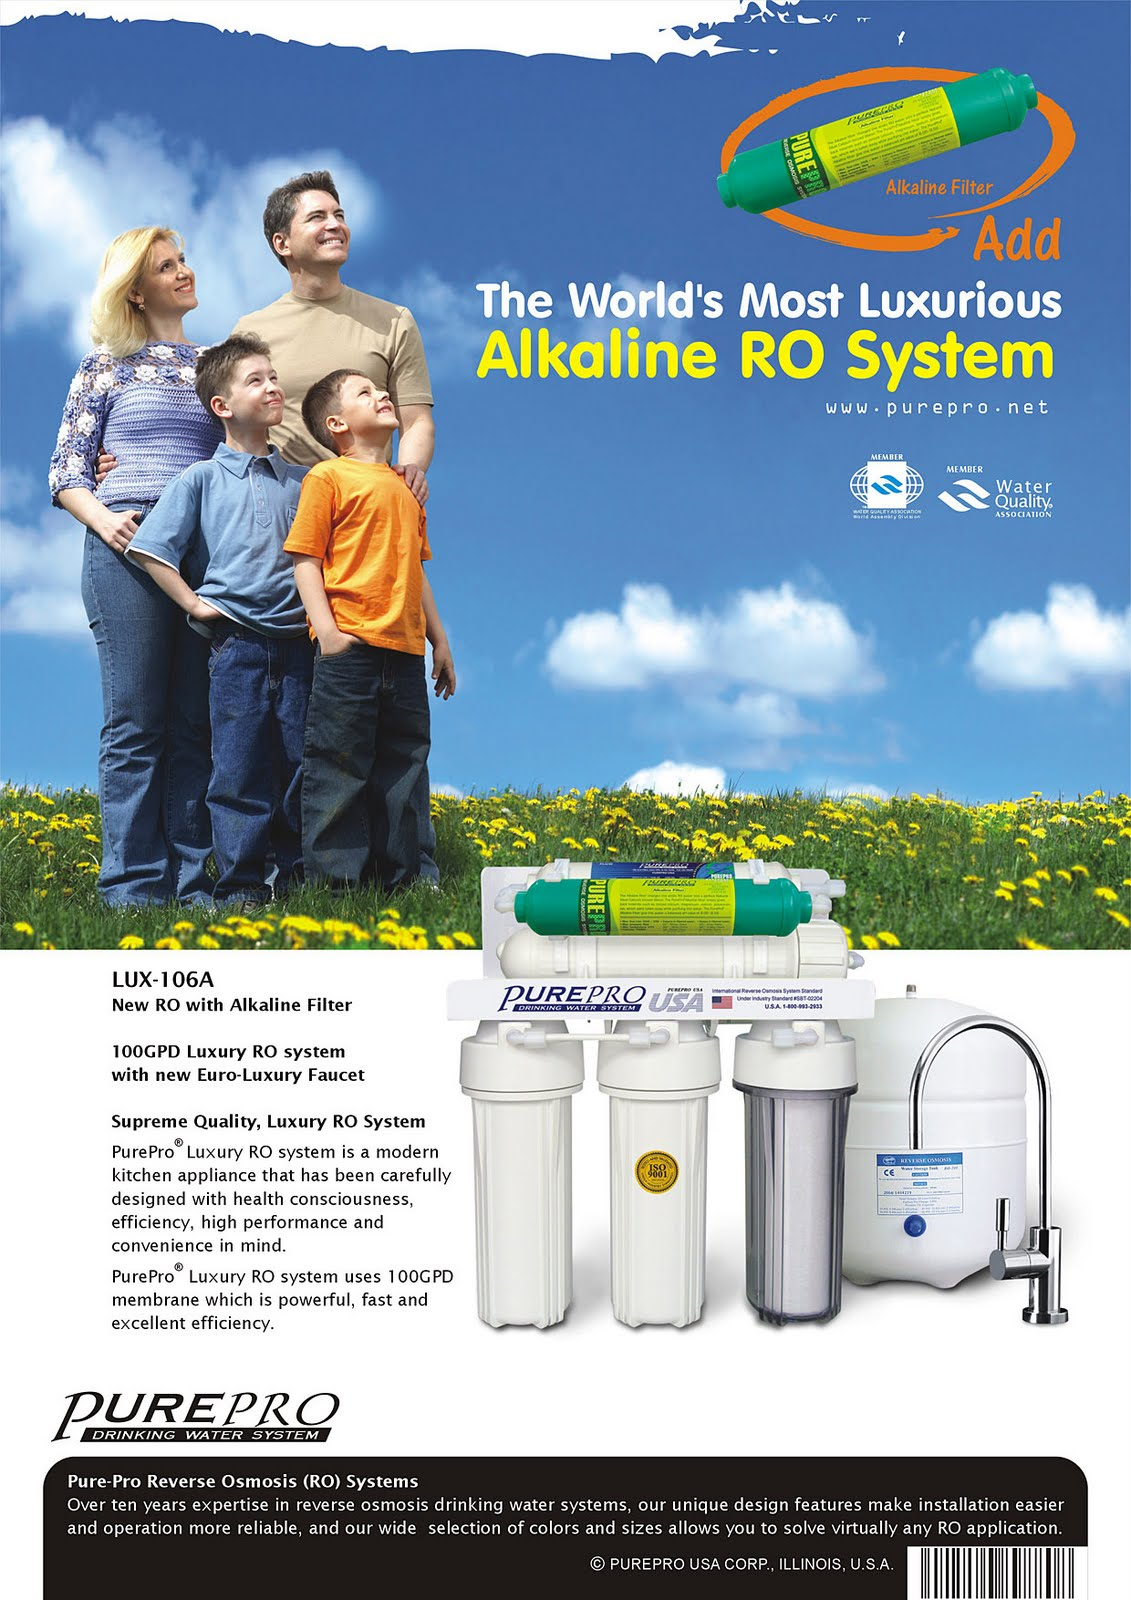 PurePro® LUX-106A Reverse Osmosis Water Filtration System